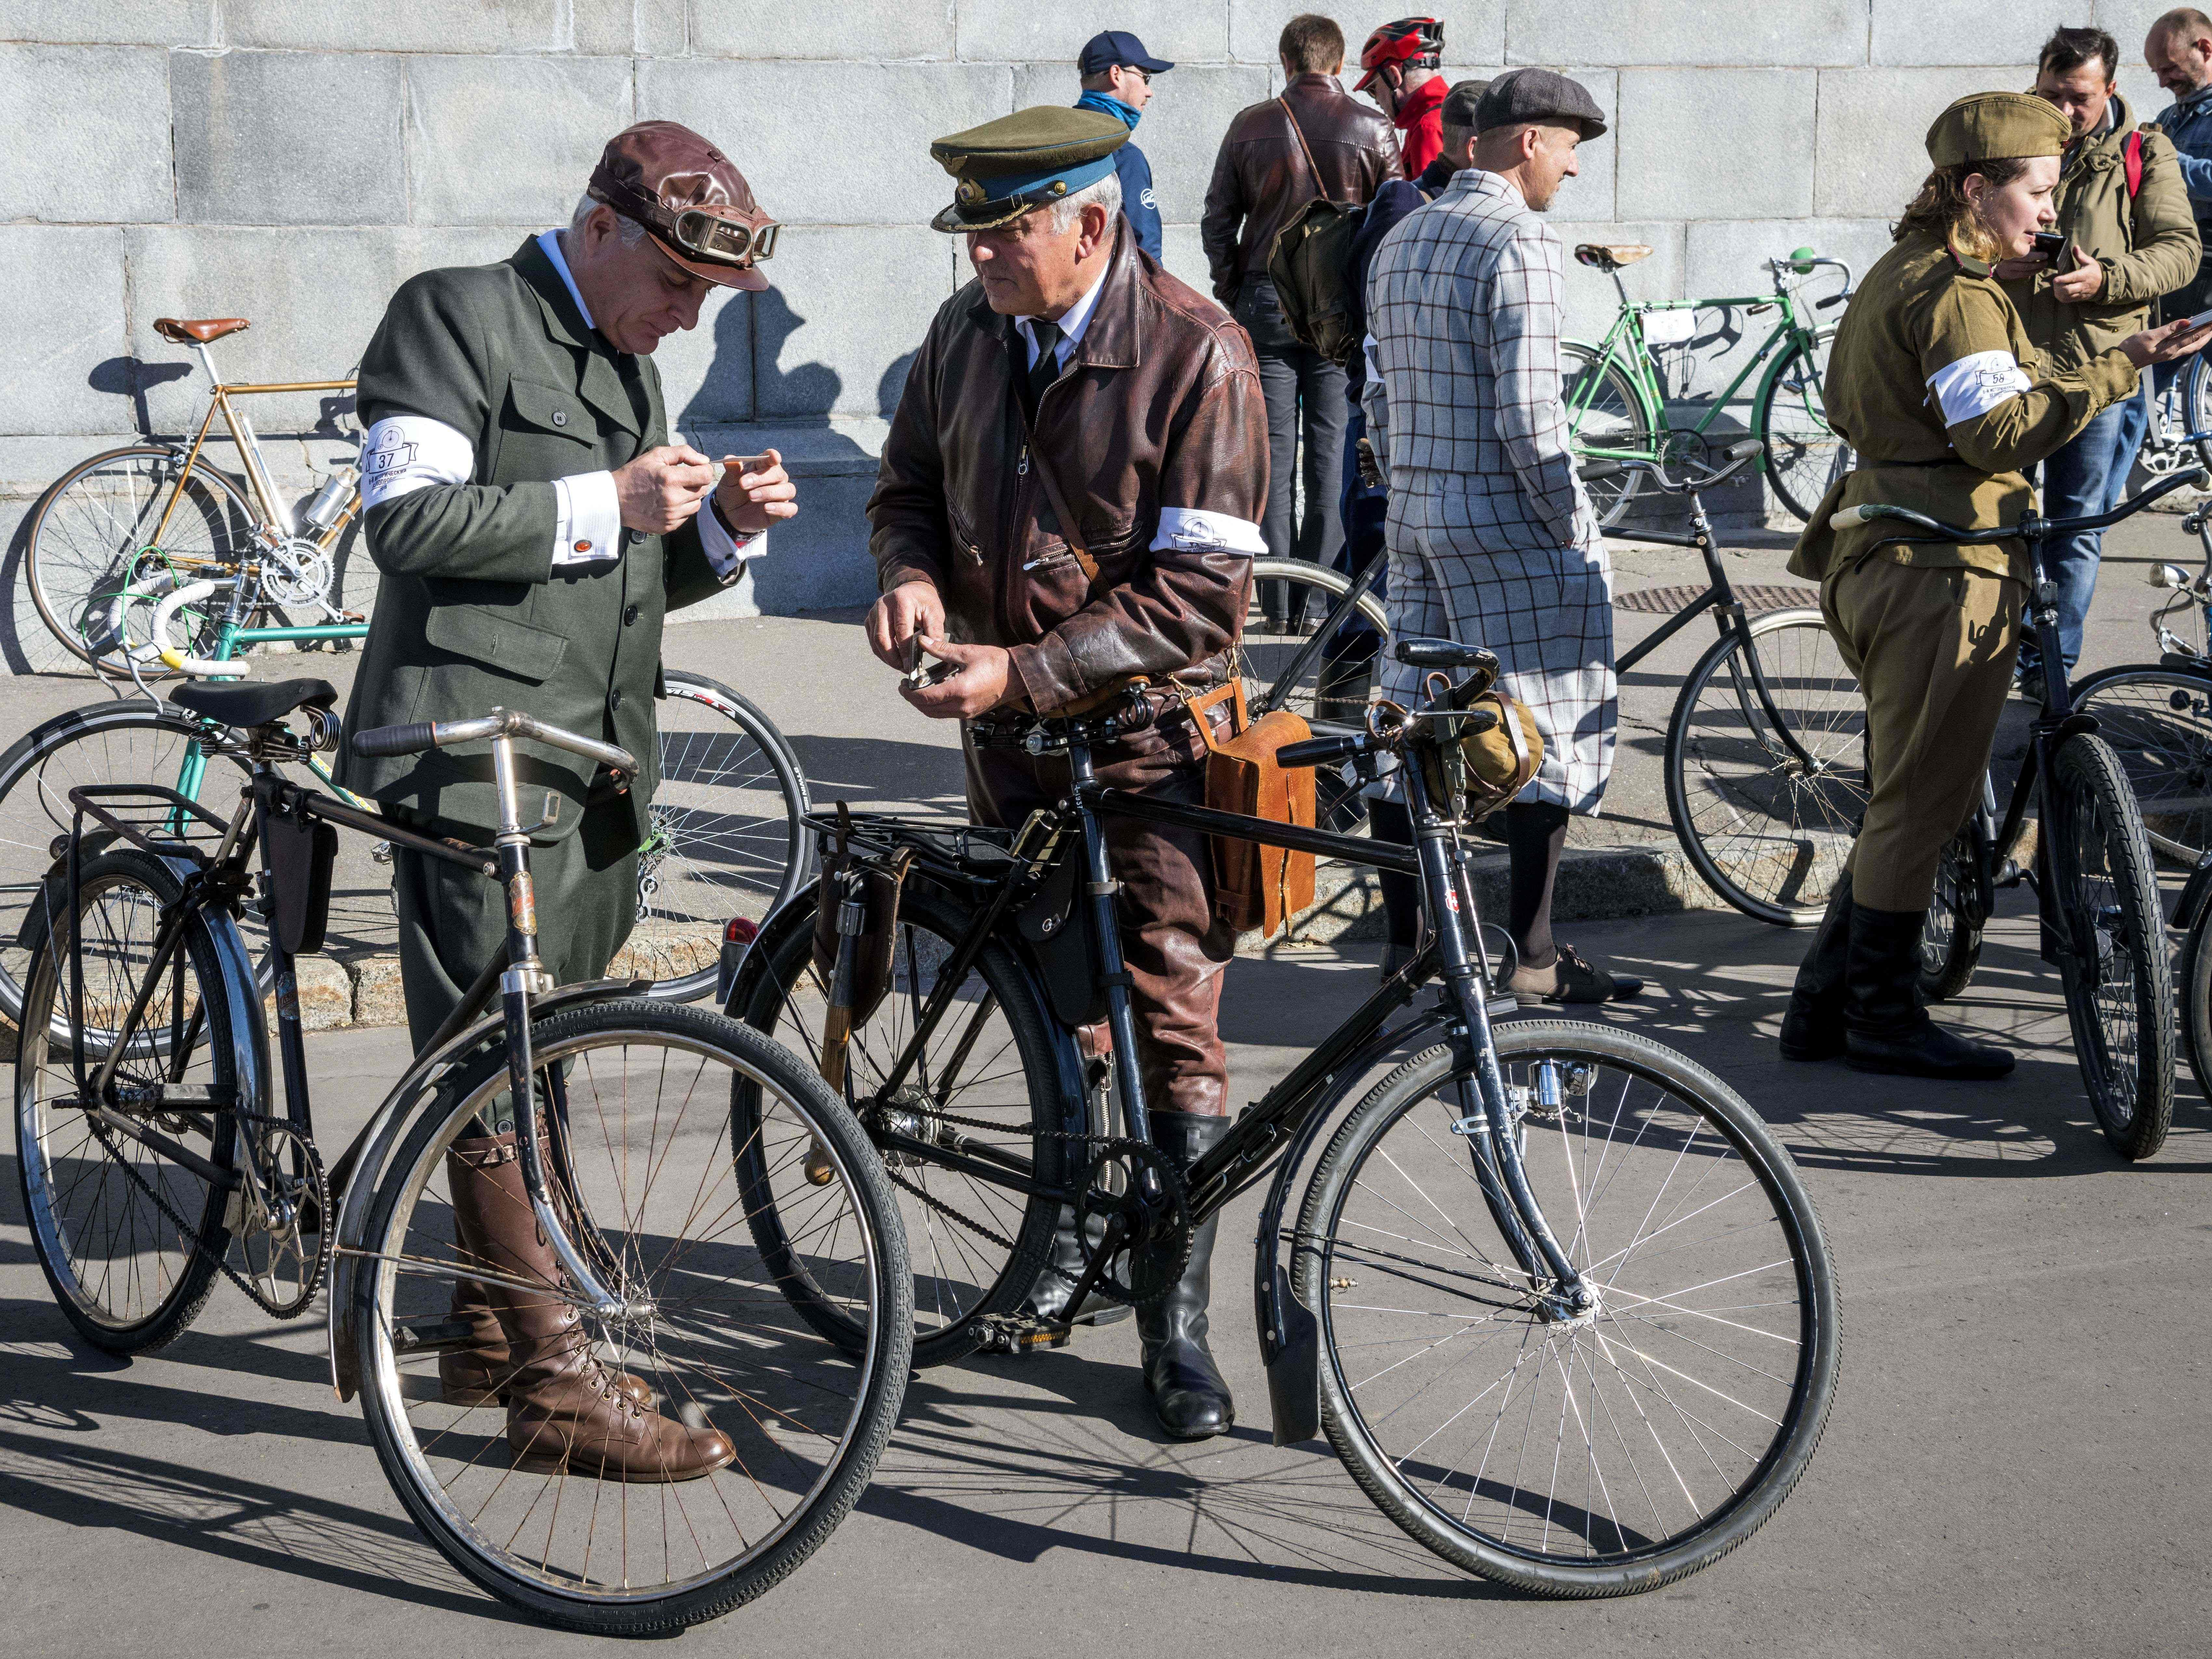 Bicycle enthusiasts dressed in vintage clothing gather at Gorky Park entrance for the annual retro bicycle parade in Moscow on Sept. 30, 2018.